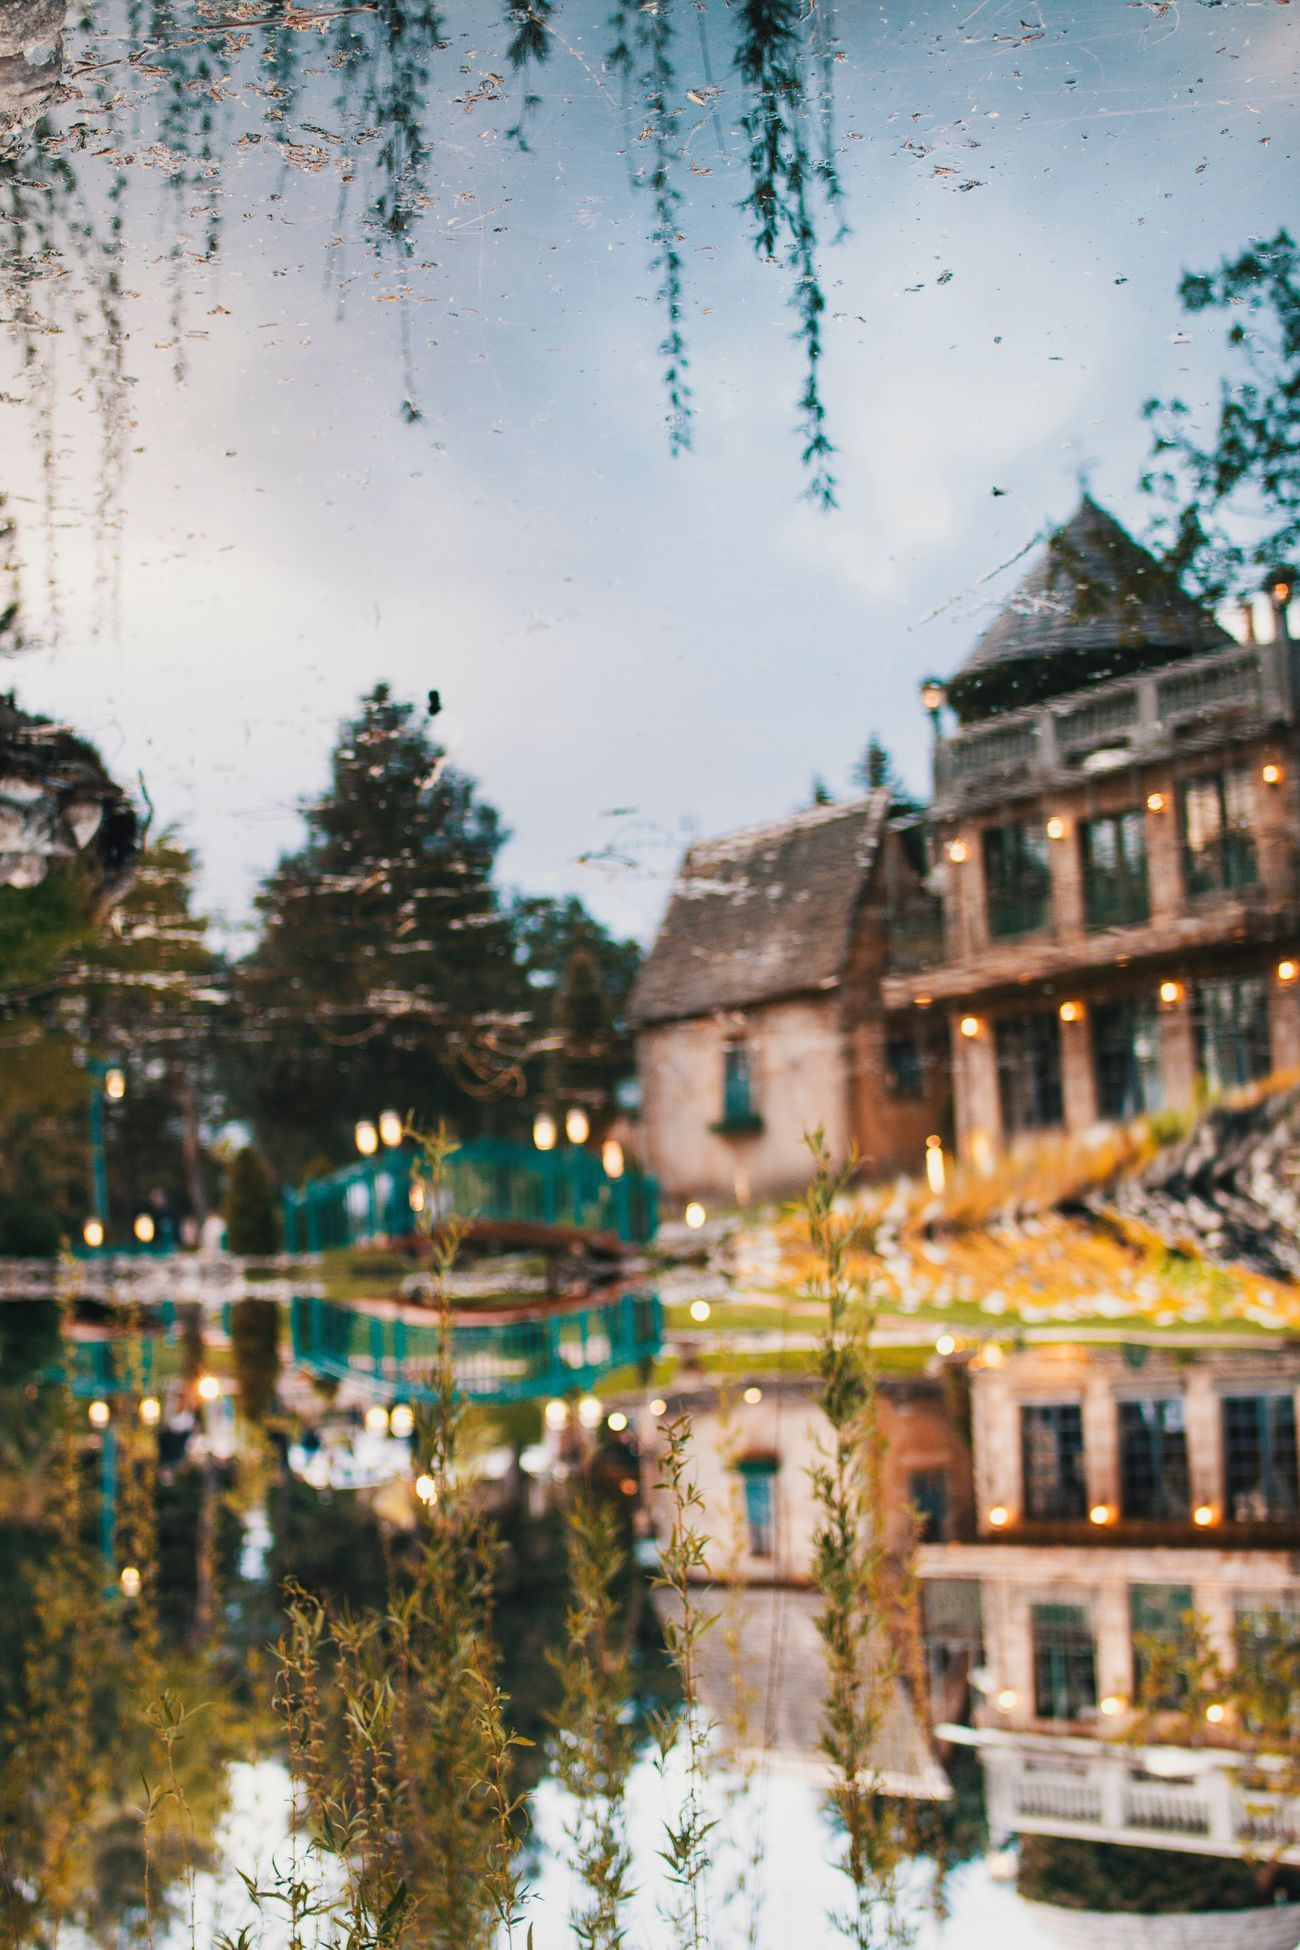 La Caille Architecture Bridge Bridge - Man Made Structure Built Structure Canon Canon70d Day Edpollei Lake Landscape Landscape_Collection Like Moss Nature Nature Nature_collection Outdoors Plants Pool Reflection Tree Trees Trees And Sky Utah Water